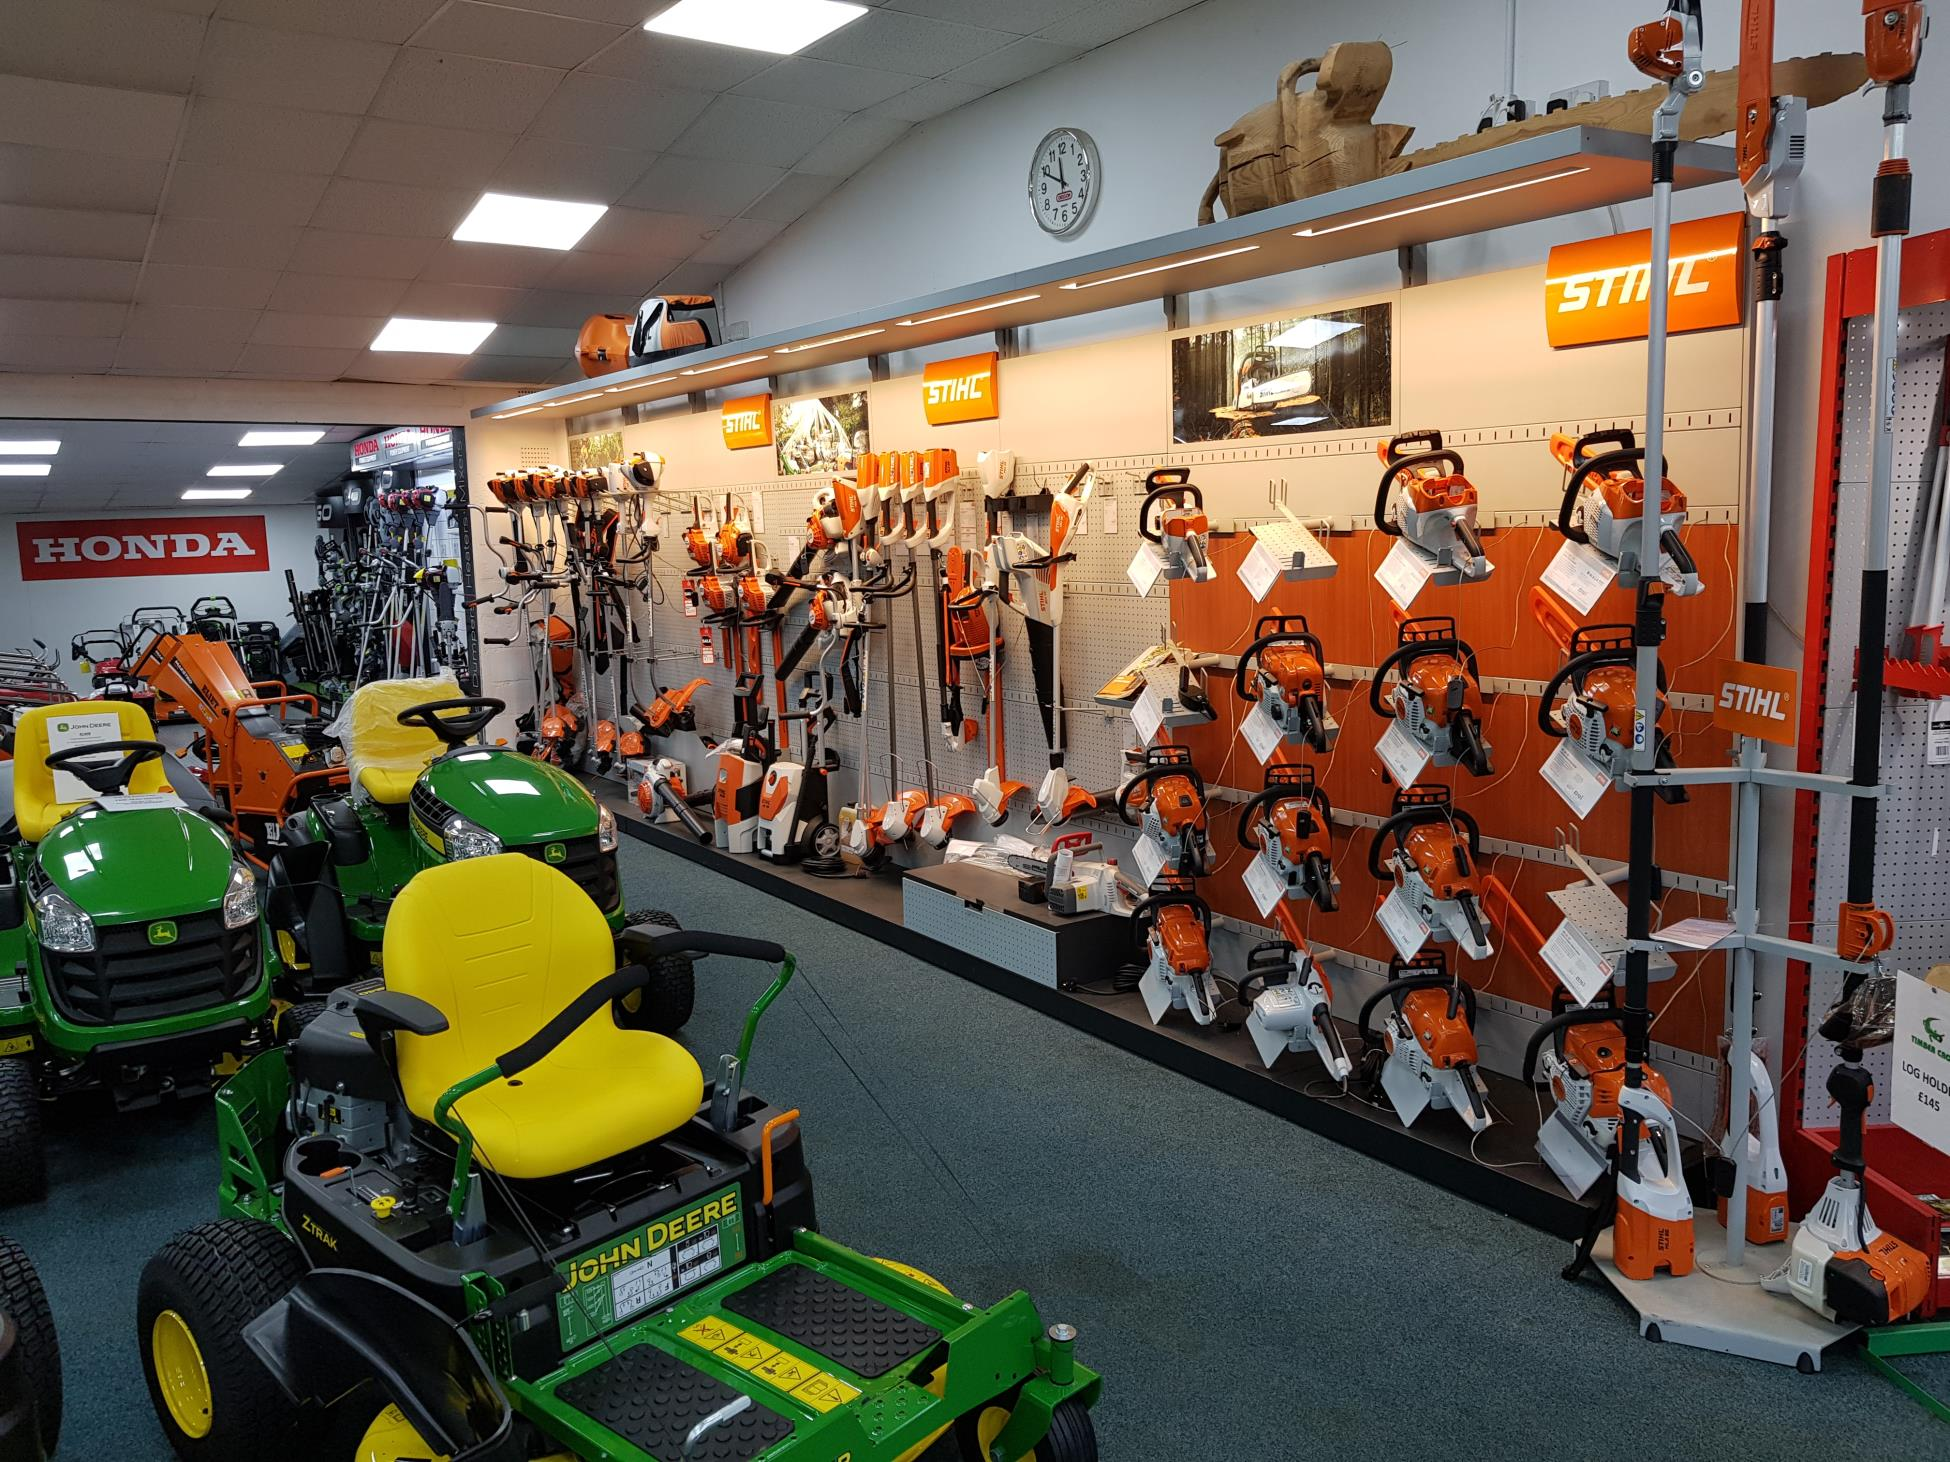 Garden machinery shop in Chippenham